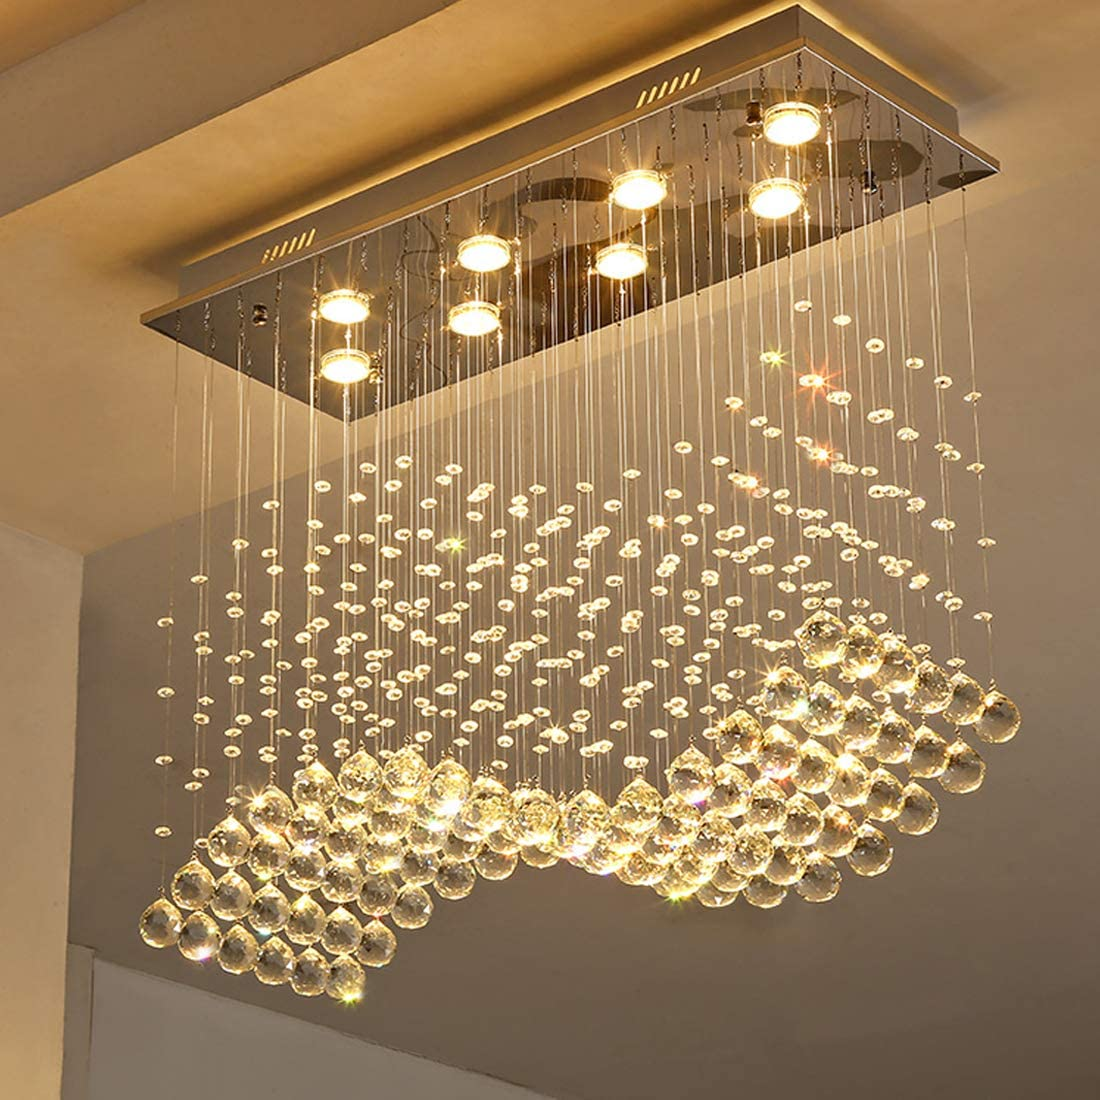 Moooni Modern Rectangular Crystal Chandelier Lighting Wave Raindrop Pendent Flush Mount Ceiling Light Fixture for Dining Room L31.5 x W11.8 x H27.6